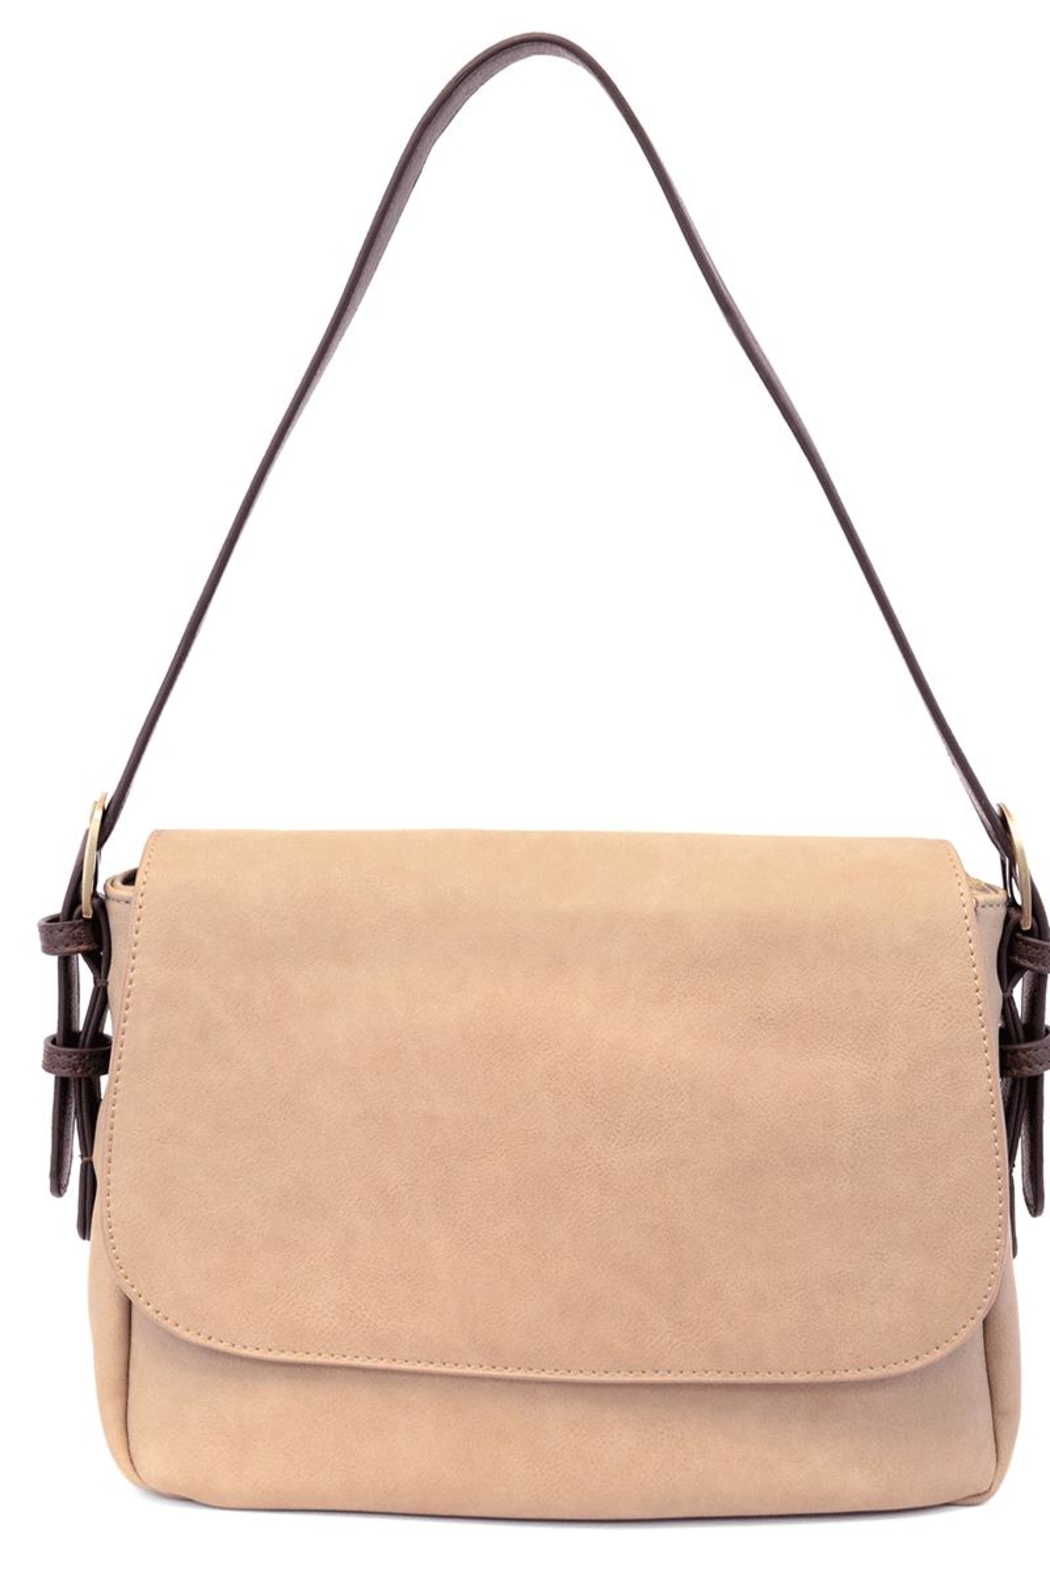 Joy Accessories Beige Brown Purse - Main Image